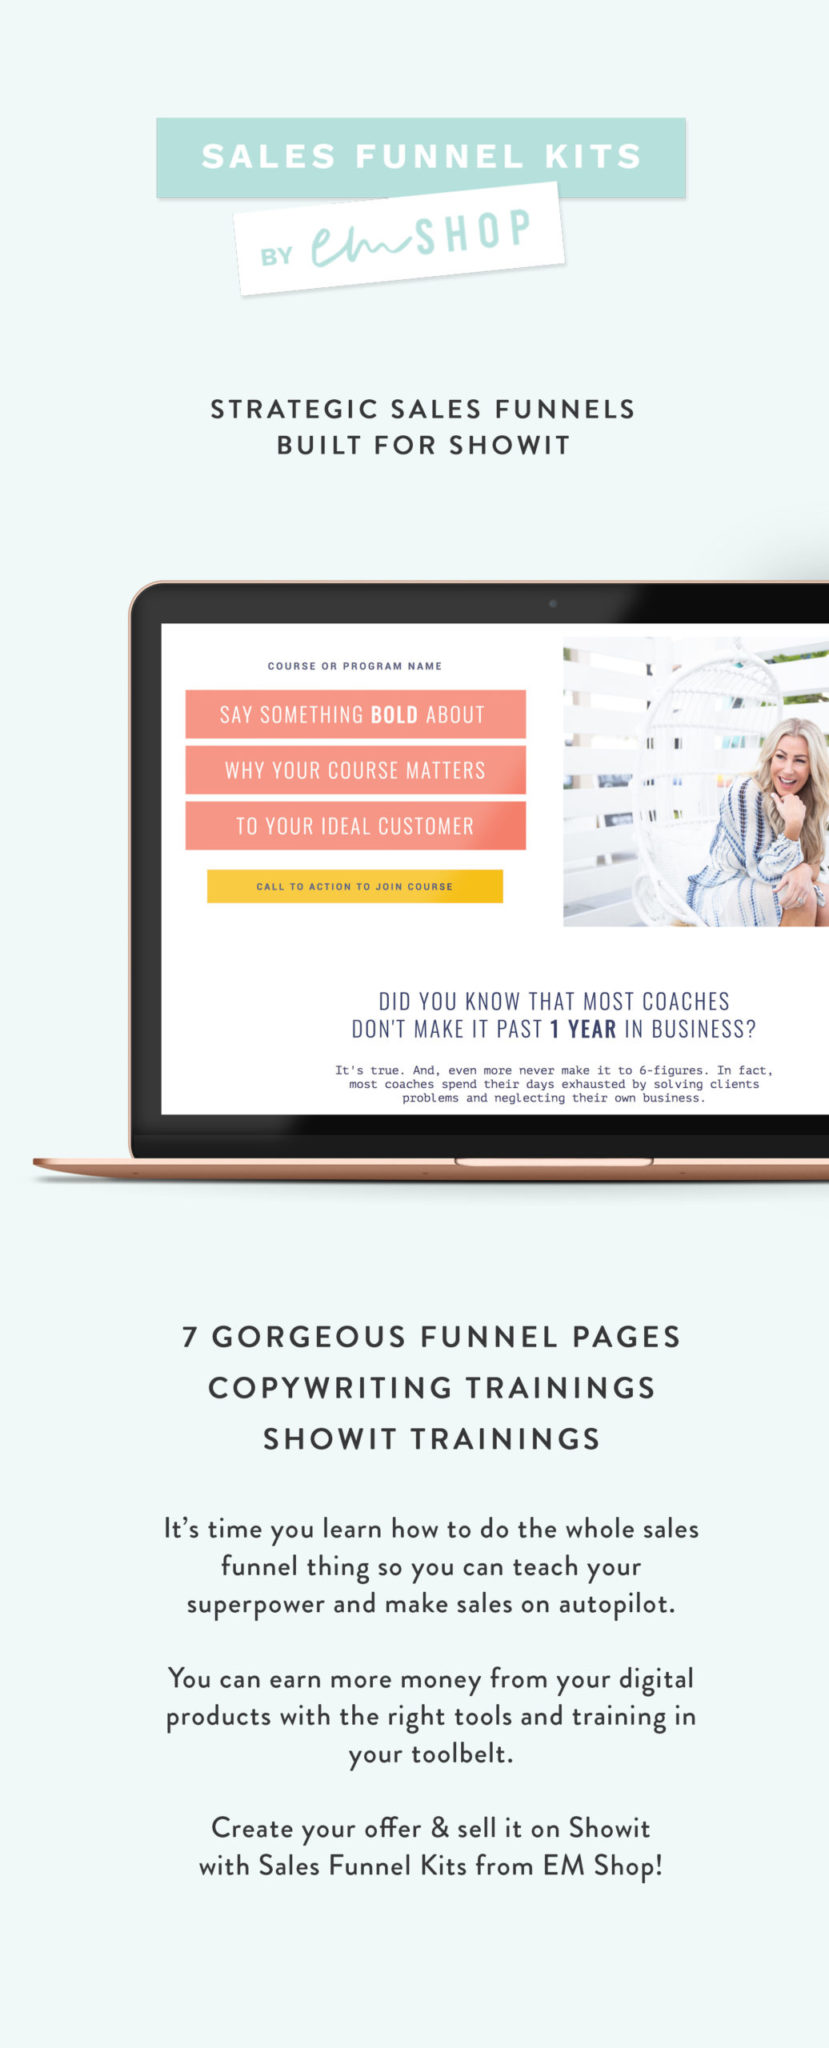 Showit Sales Page Templates by EM Shop — strategic, beautiful and easy to use sales funnels built for Showit5